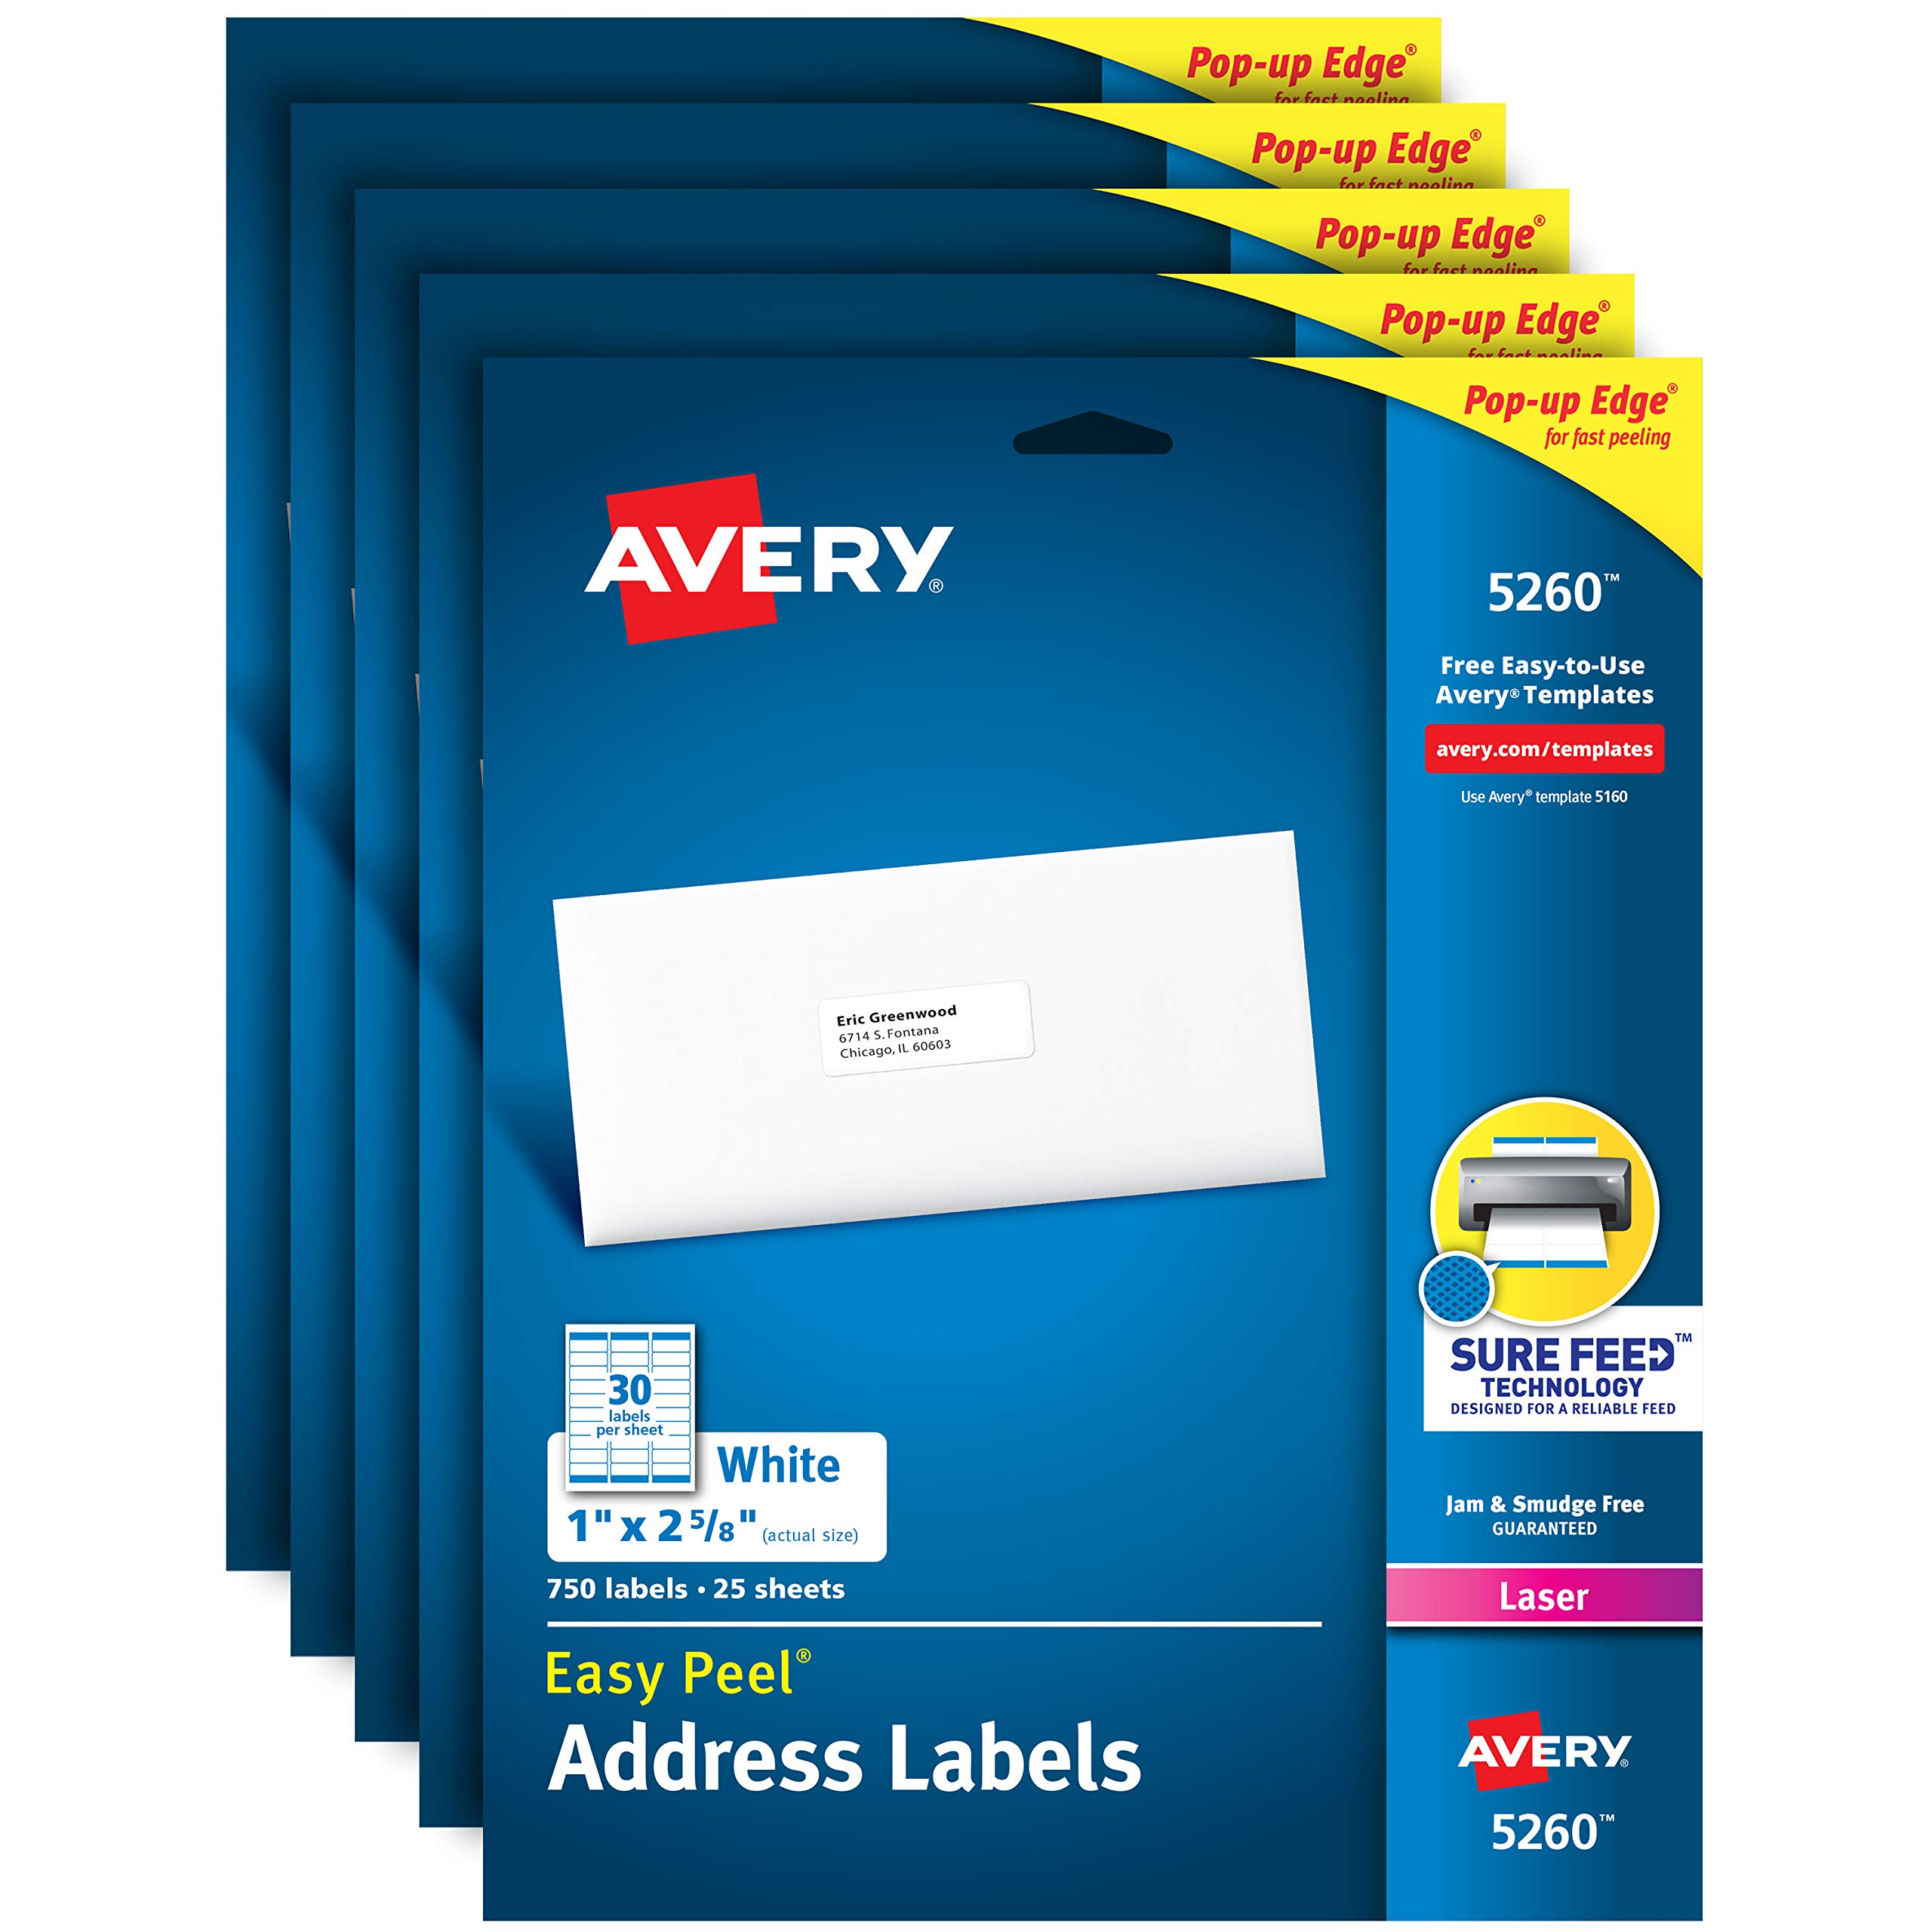 Avery Address Labels with Sure Feed for Laser Printers, 1'' x 2-5/8'', 3,750 Labels - Great for FBA Labels (5 Packs 5260) by Avery